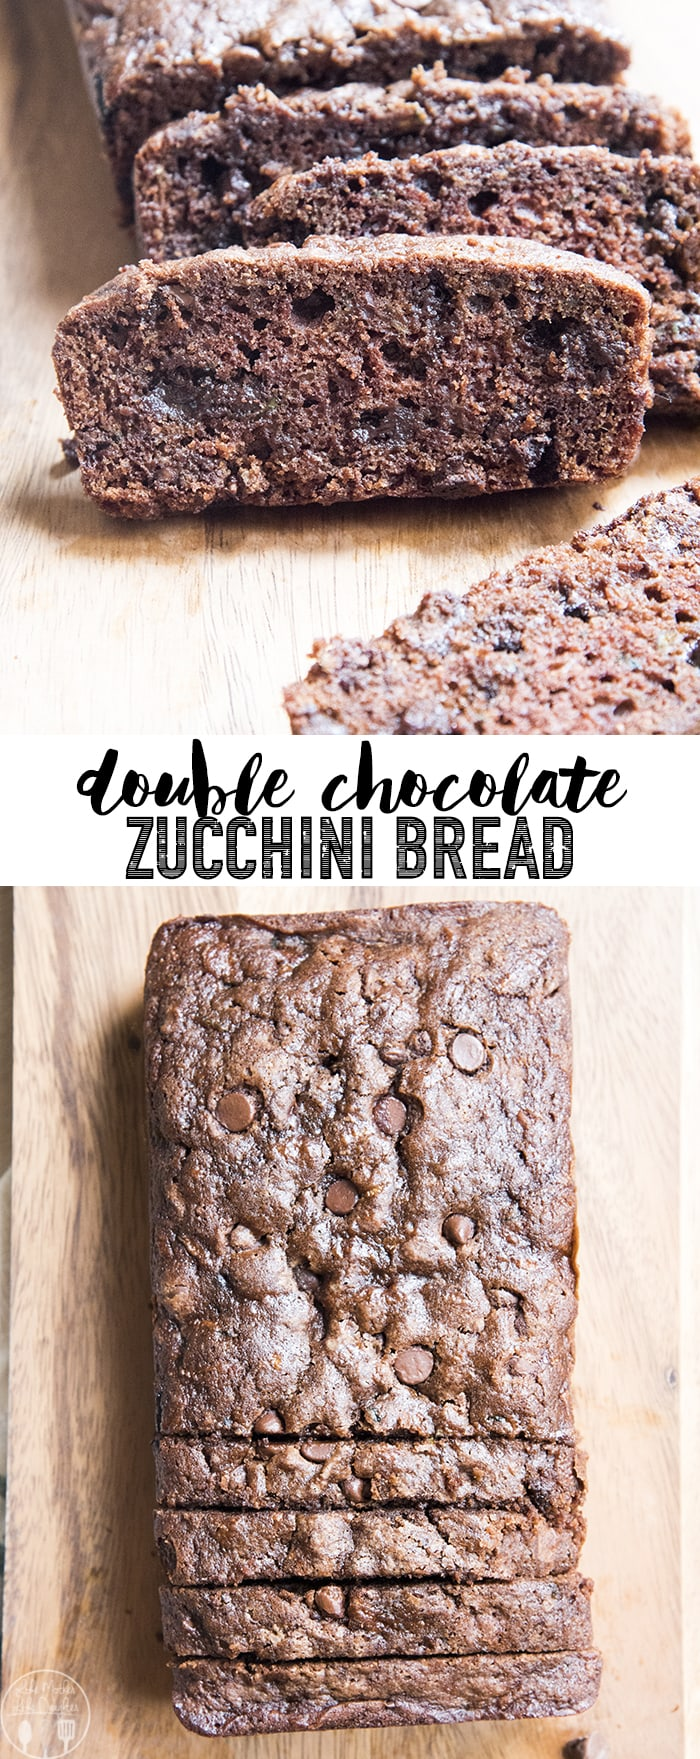 This double chocolate zucchini bread is moist, delicious, and the perfect way to get your chocolate fix. You'll forget that there is even zucchini in it!